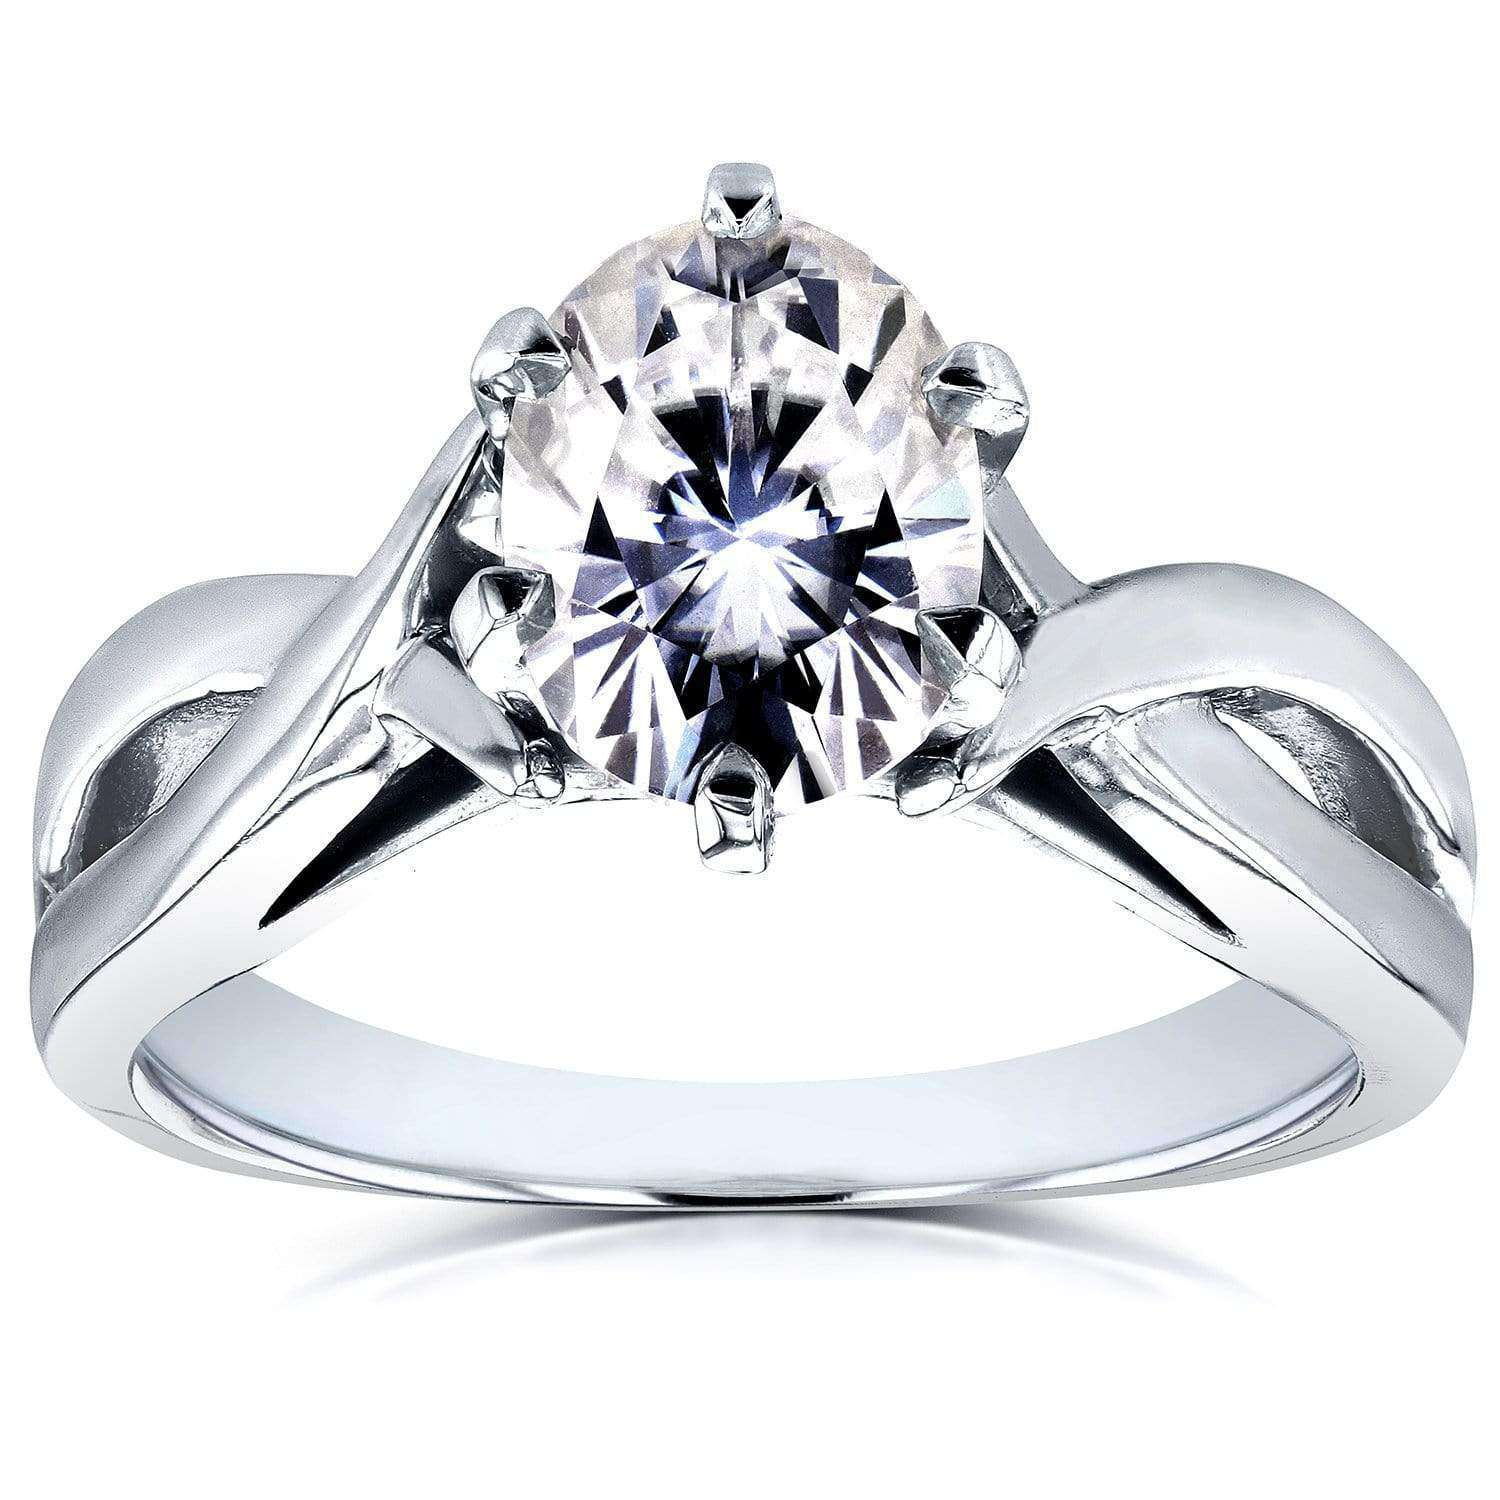 Best Forever One Oval Moissanite Solitaire Crossover Ring 1 1/2 CTW 14k White Gold - 8.5